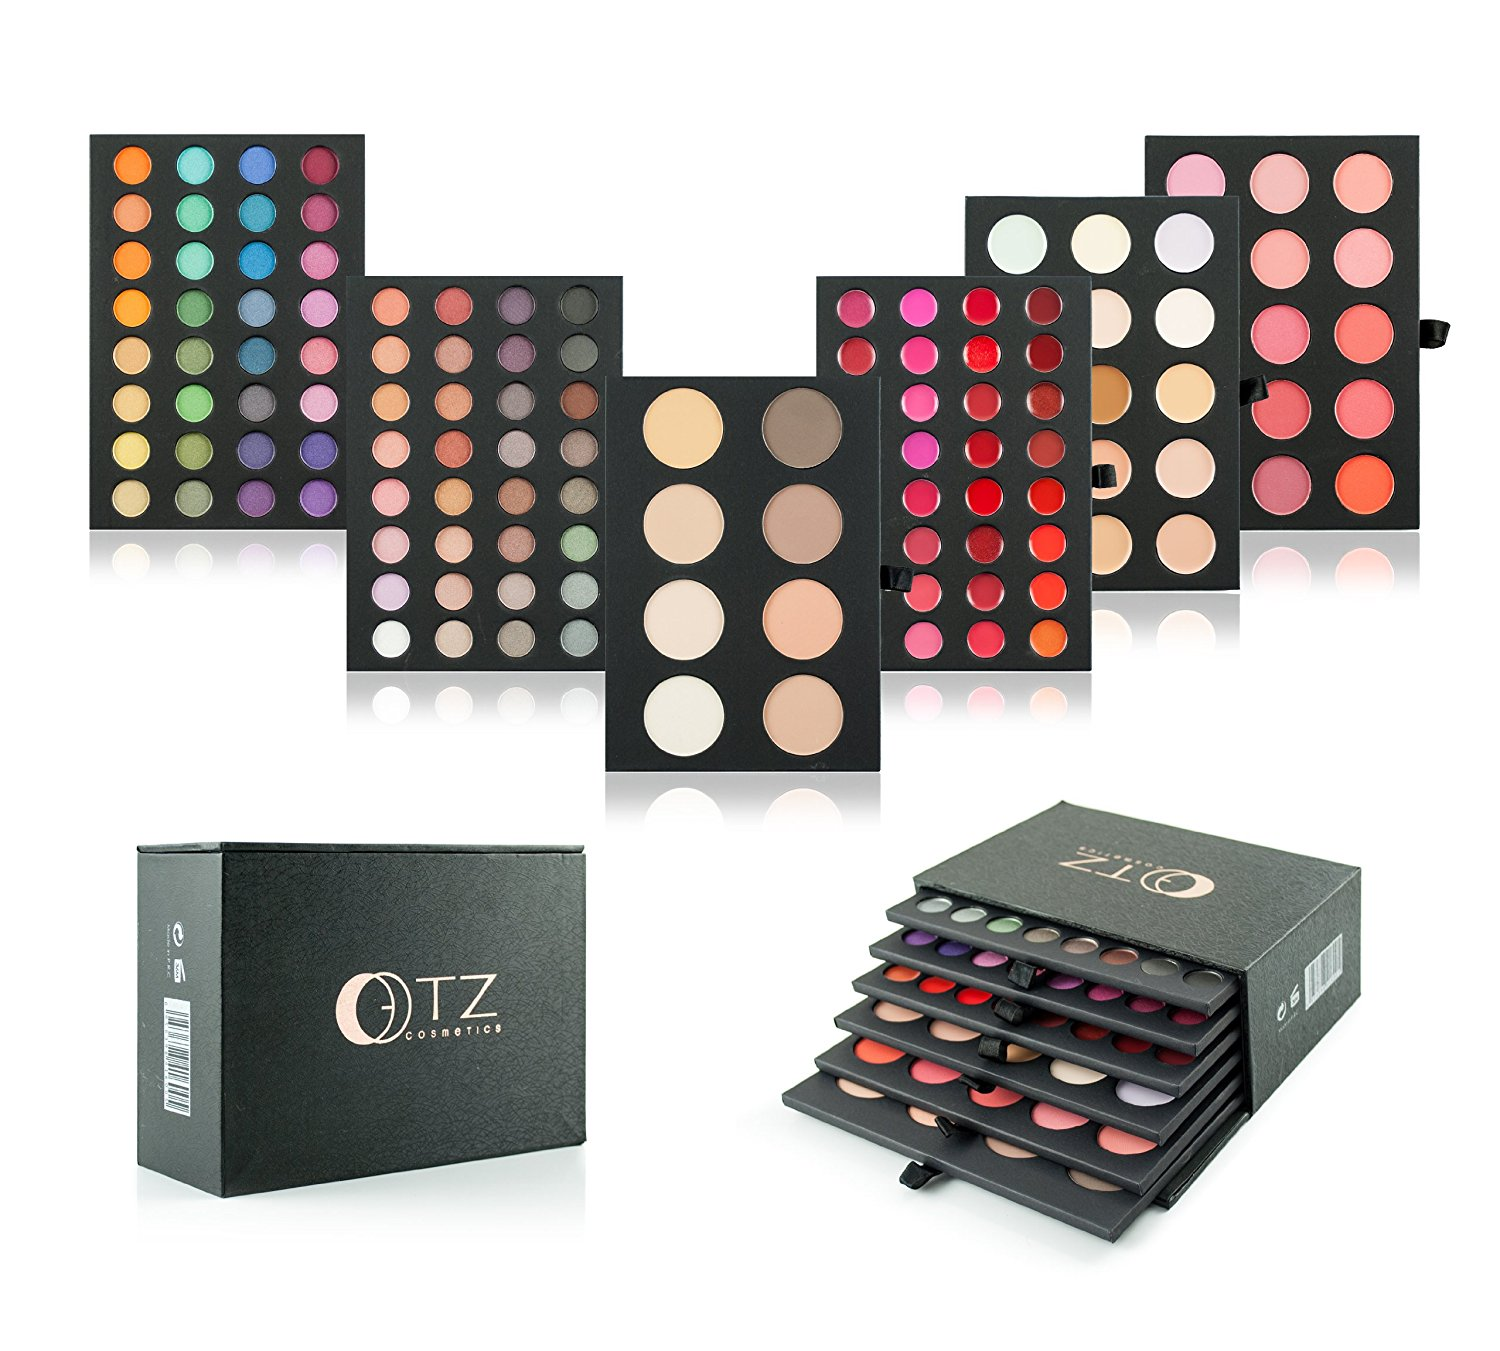 Buy 6 Colors Glossy Eyeshadow Combo Silky Powder Norms Makeup 8 In